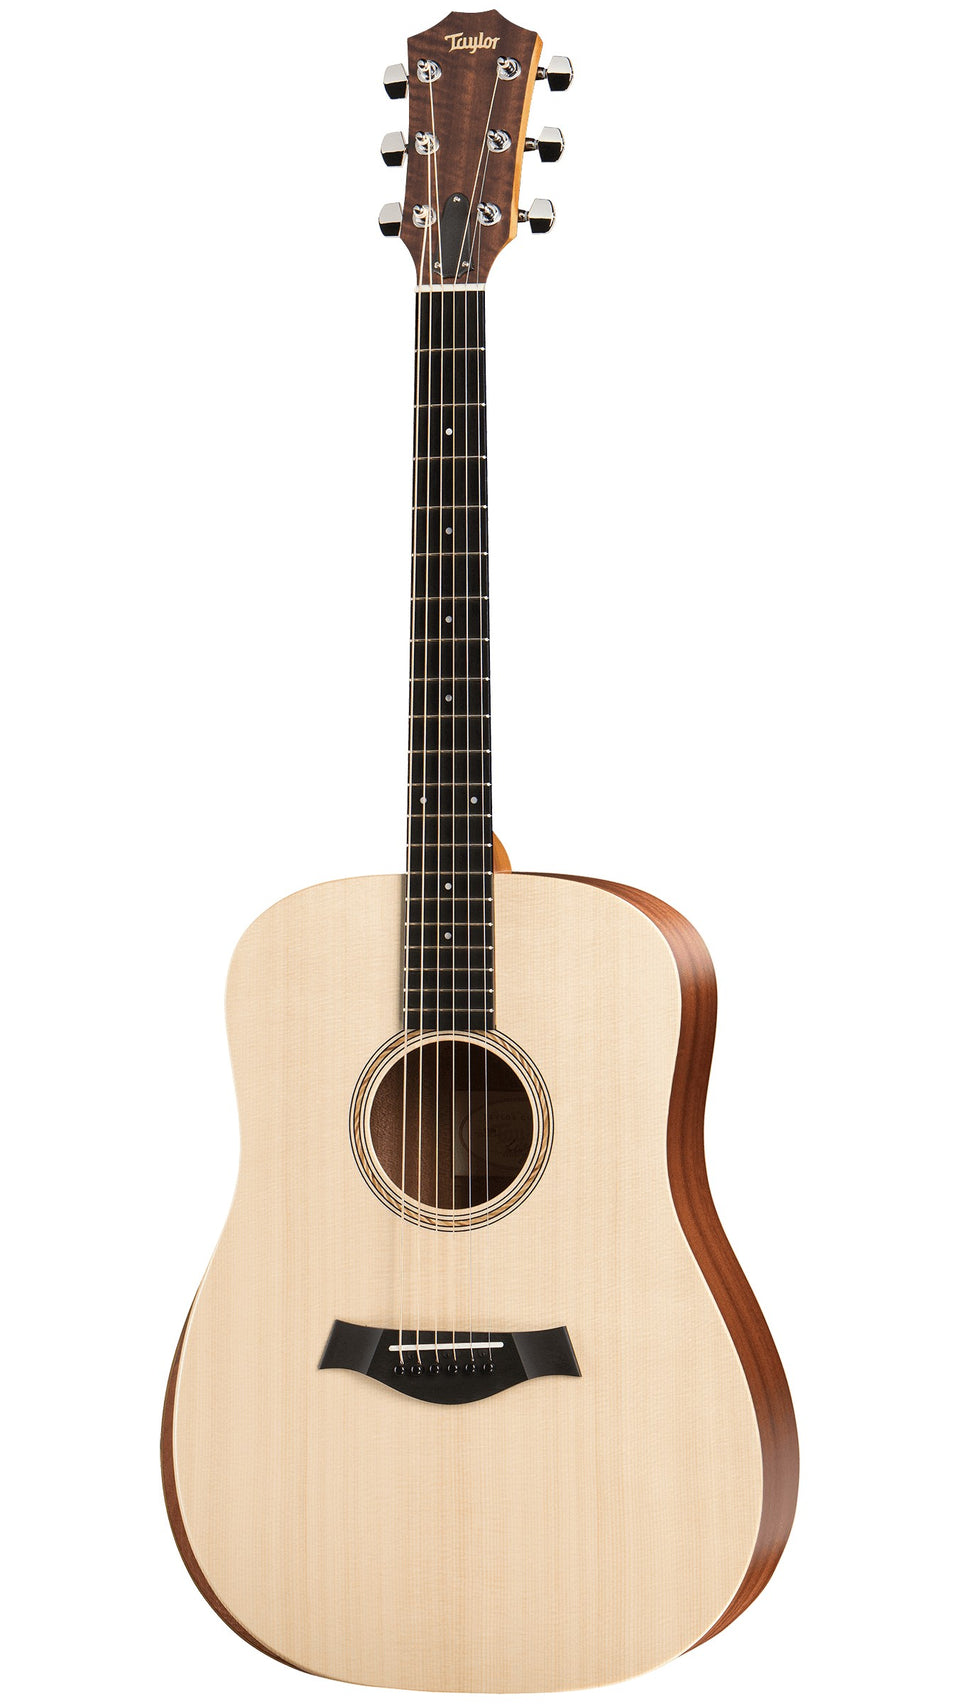 Taylor Guitars Academy 10e Acoustic Guitar